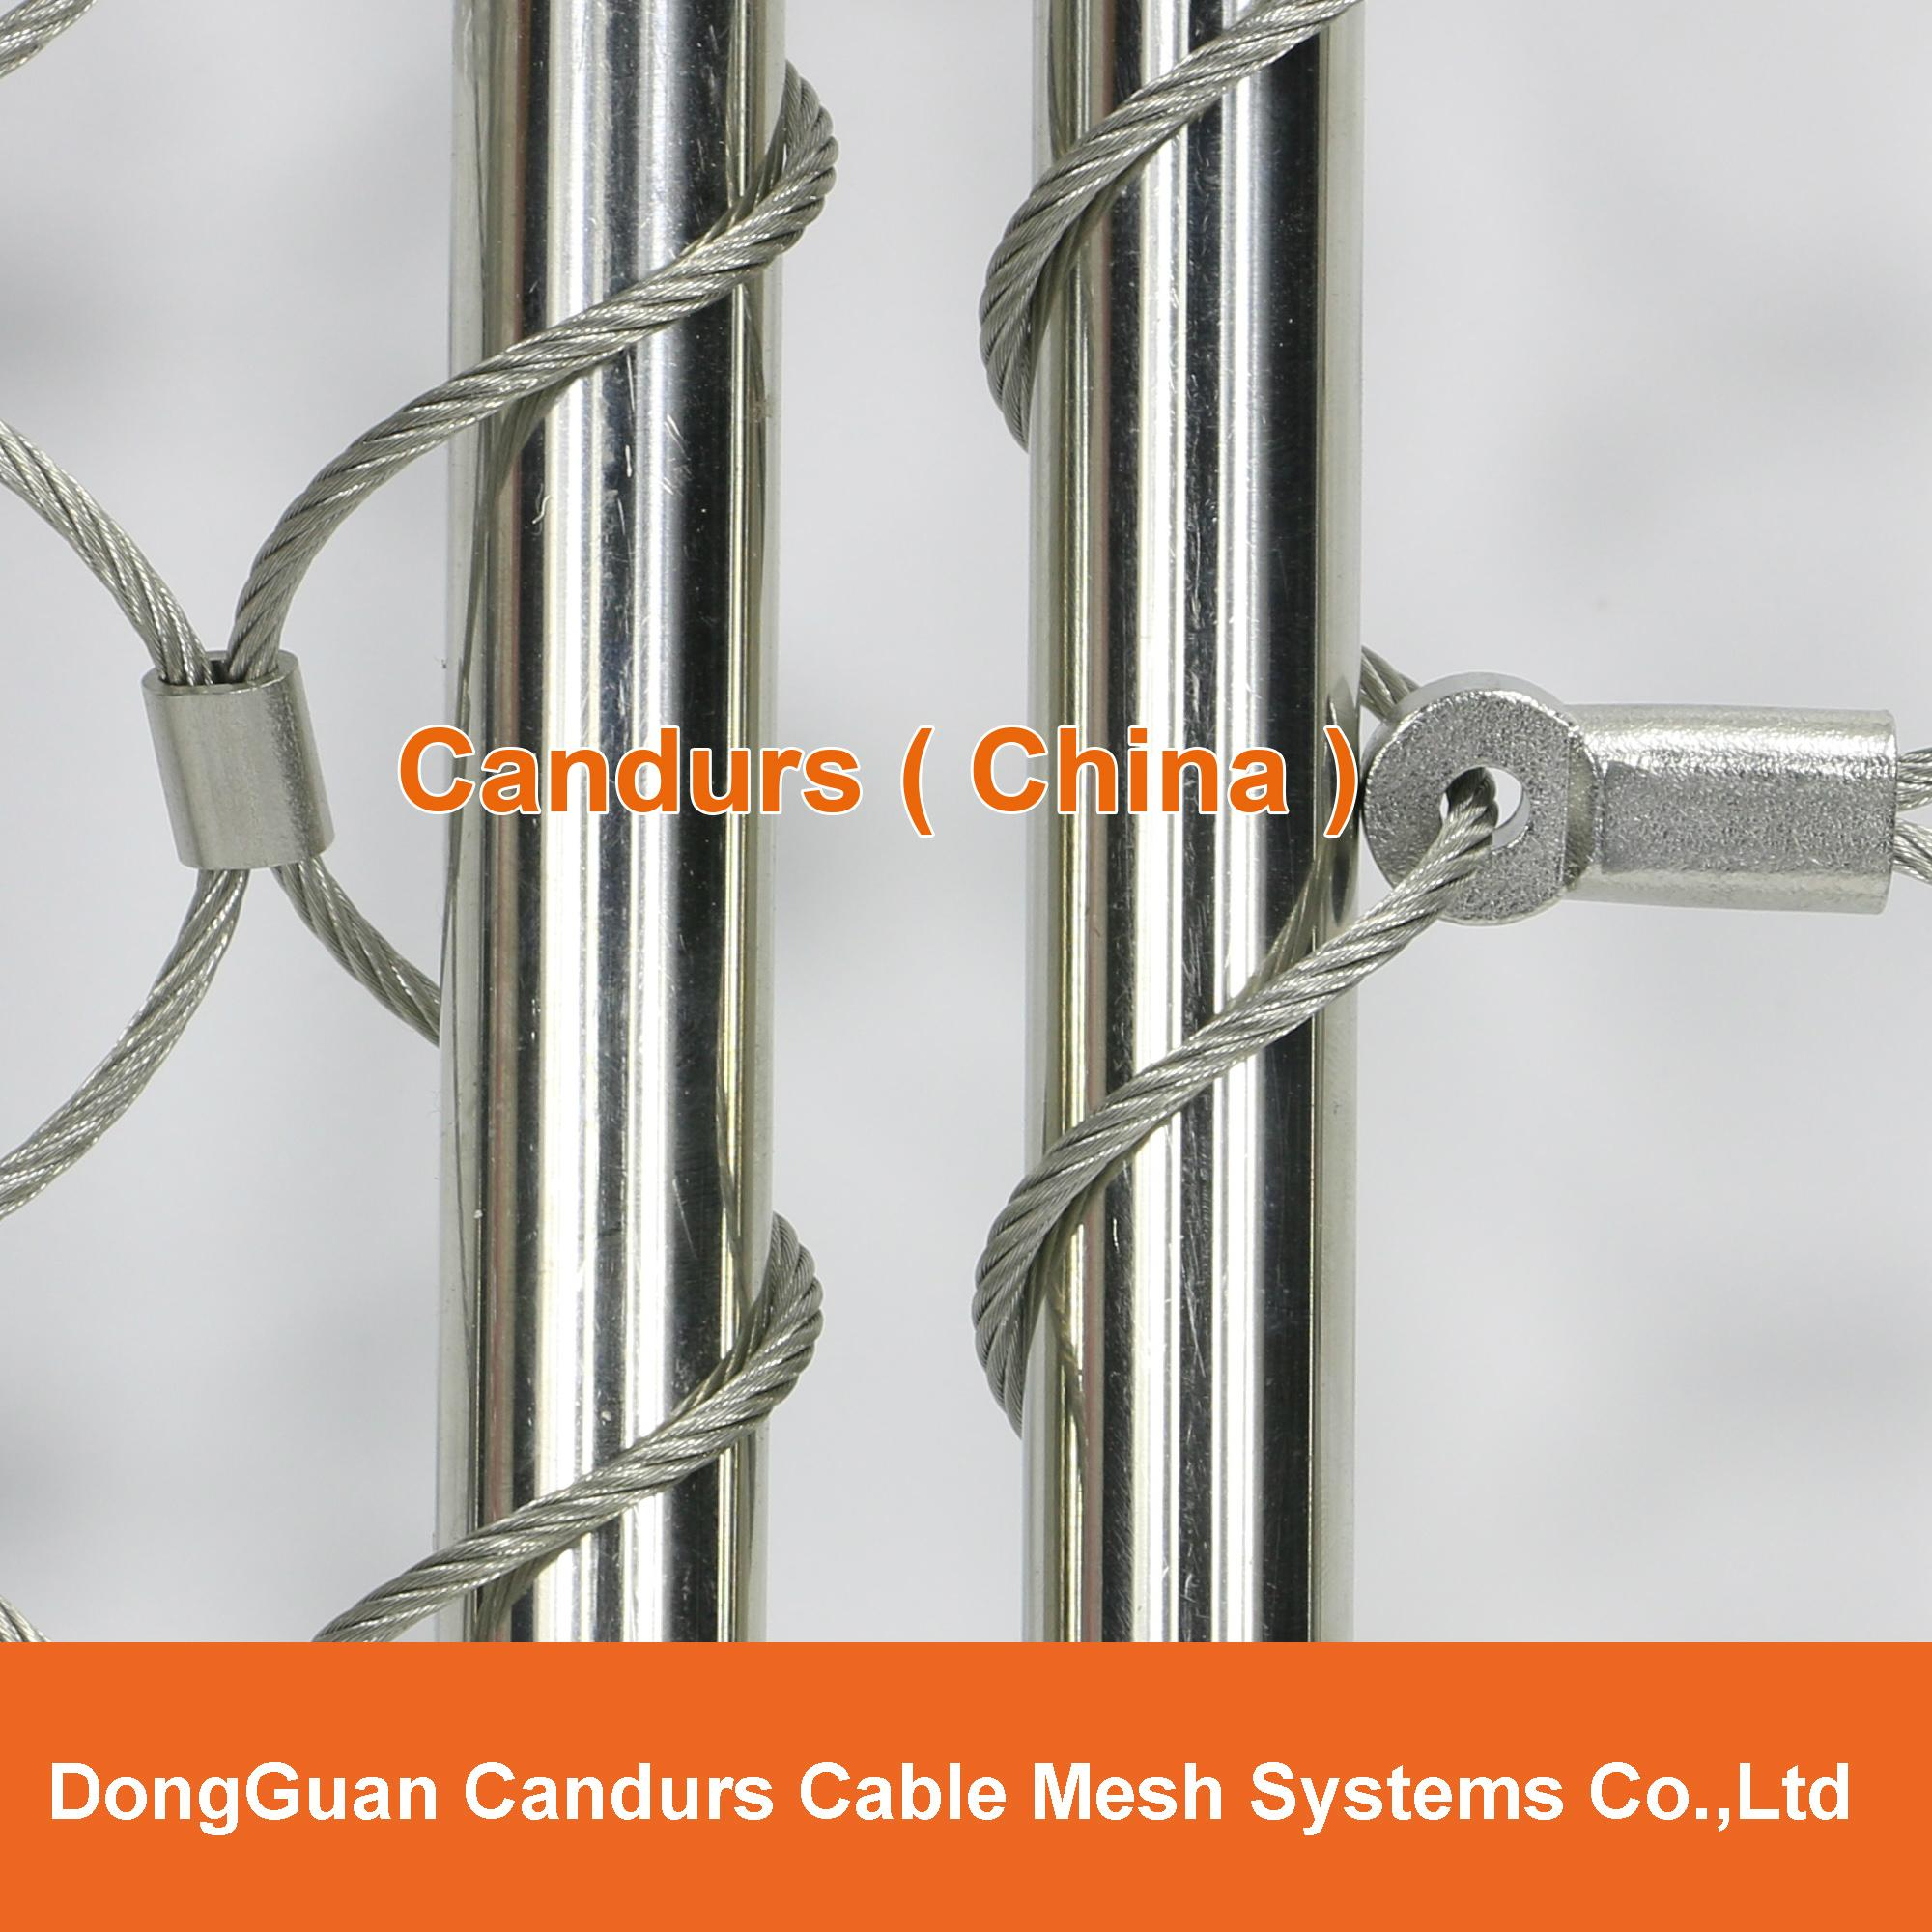 Stainless Steel Wire Product : Stainless steel wire rope mesh balustrade decorrope